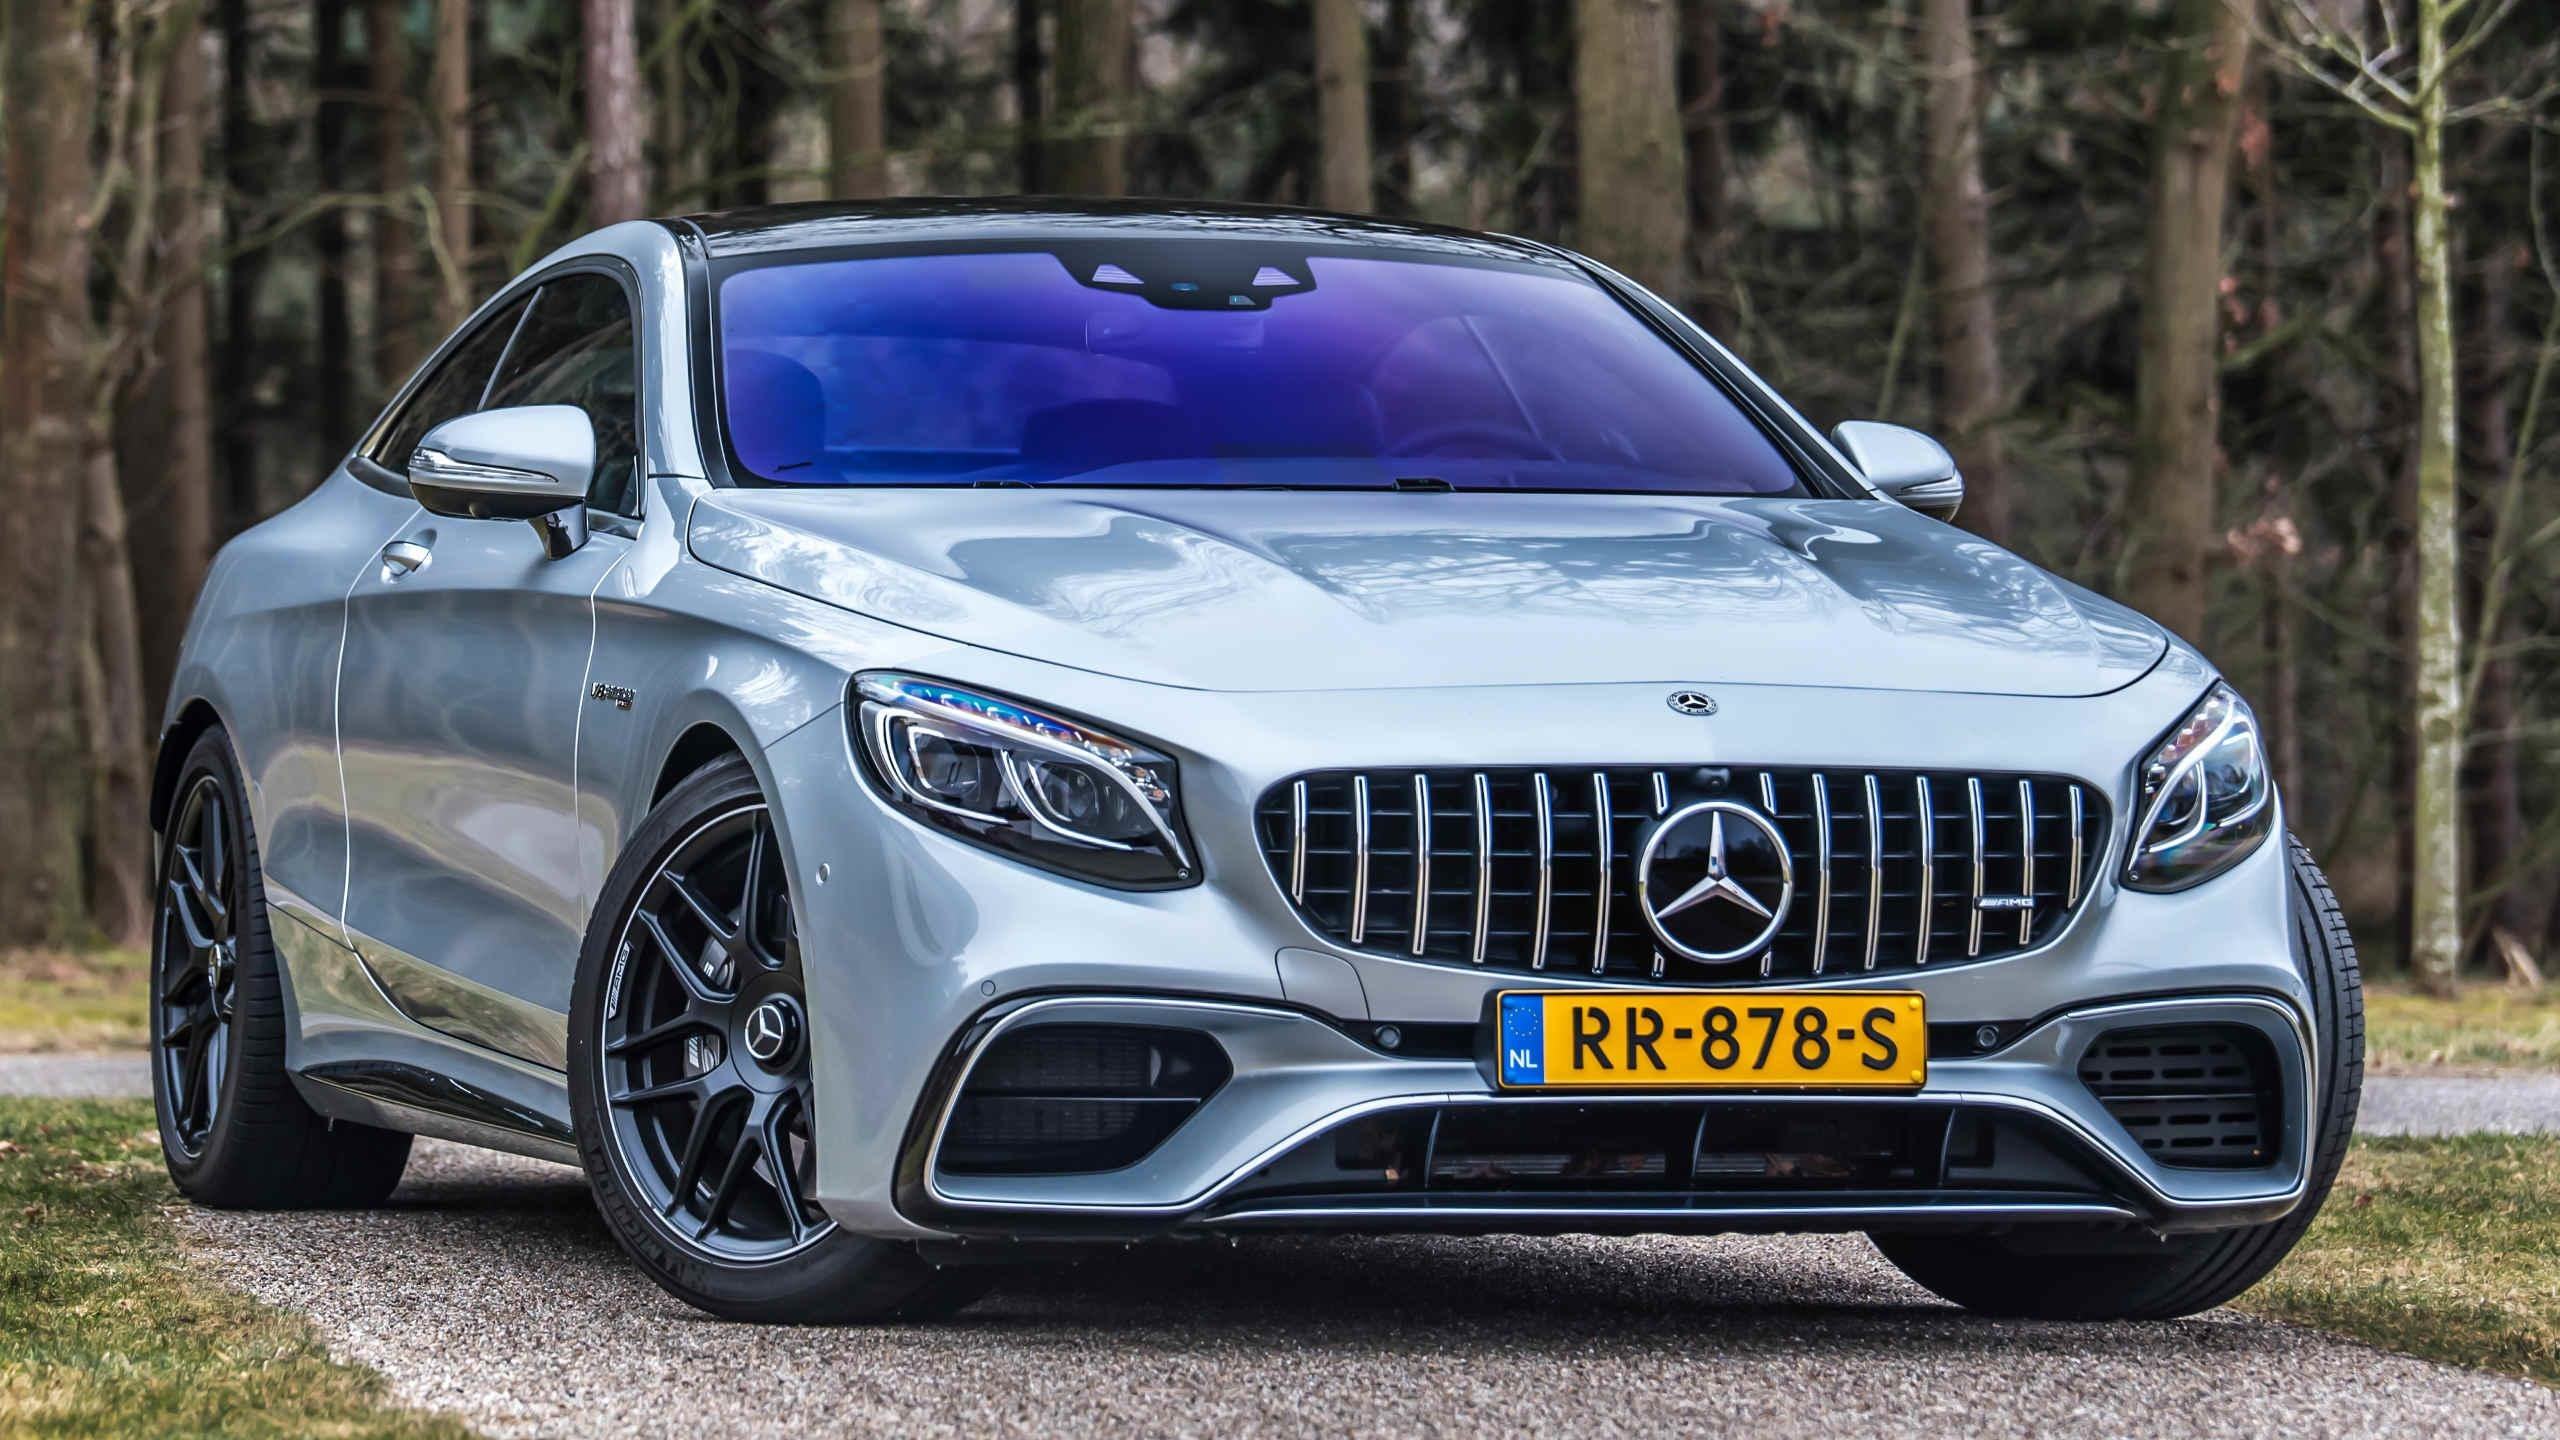 Latest Mercedes Amg S 63 4Matic Coupé Wallpaper Mbsocialcar Free Download